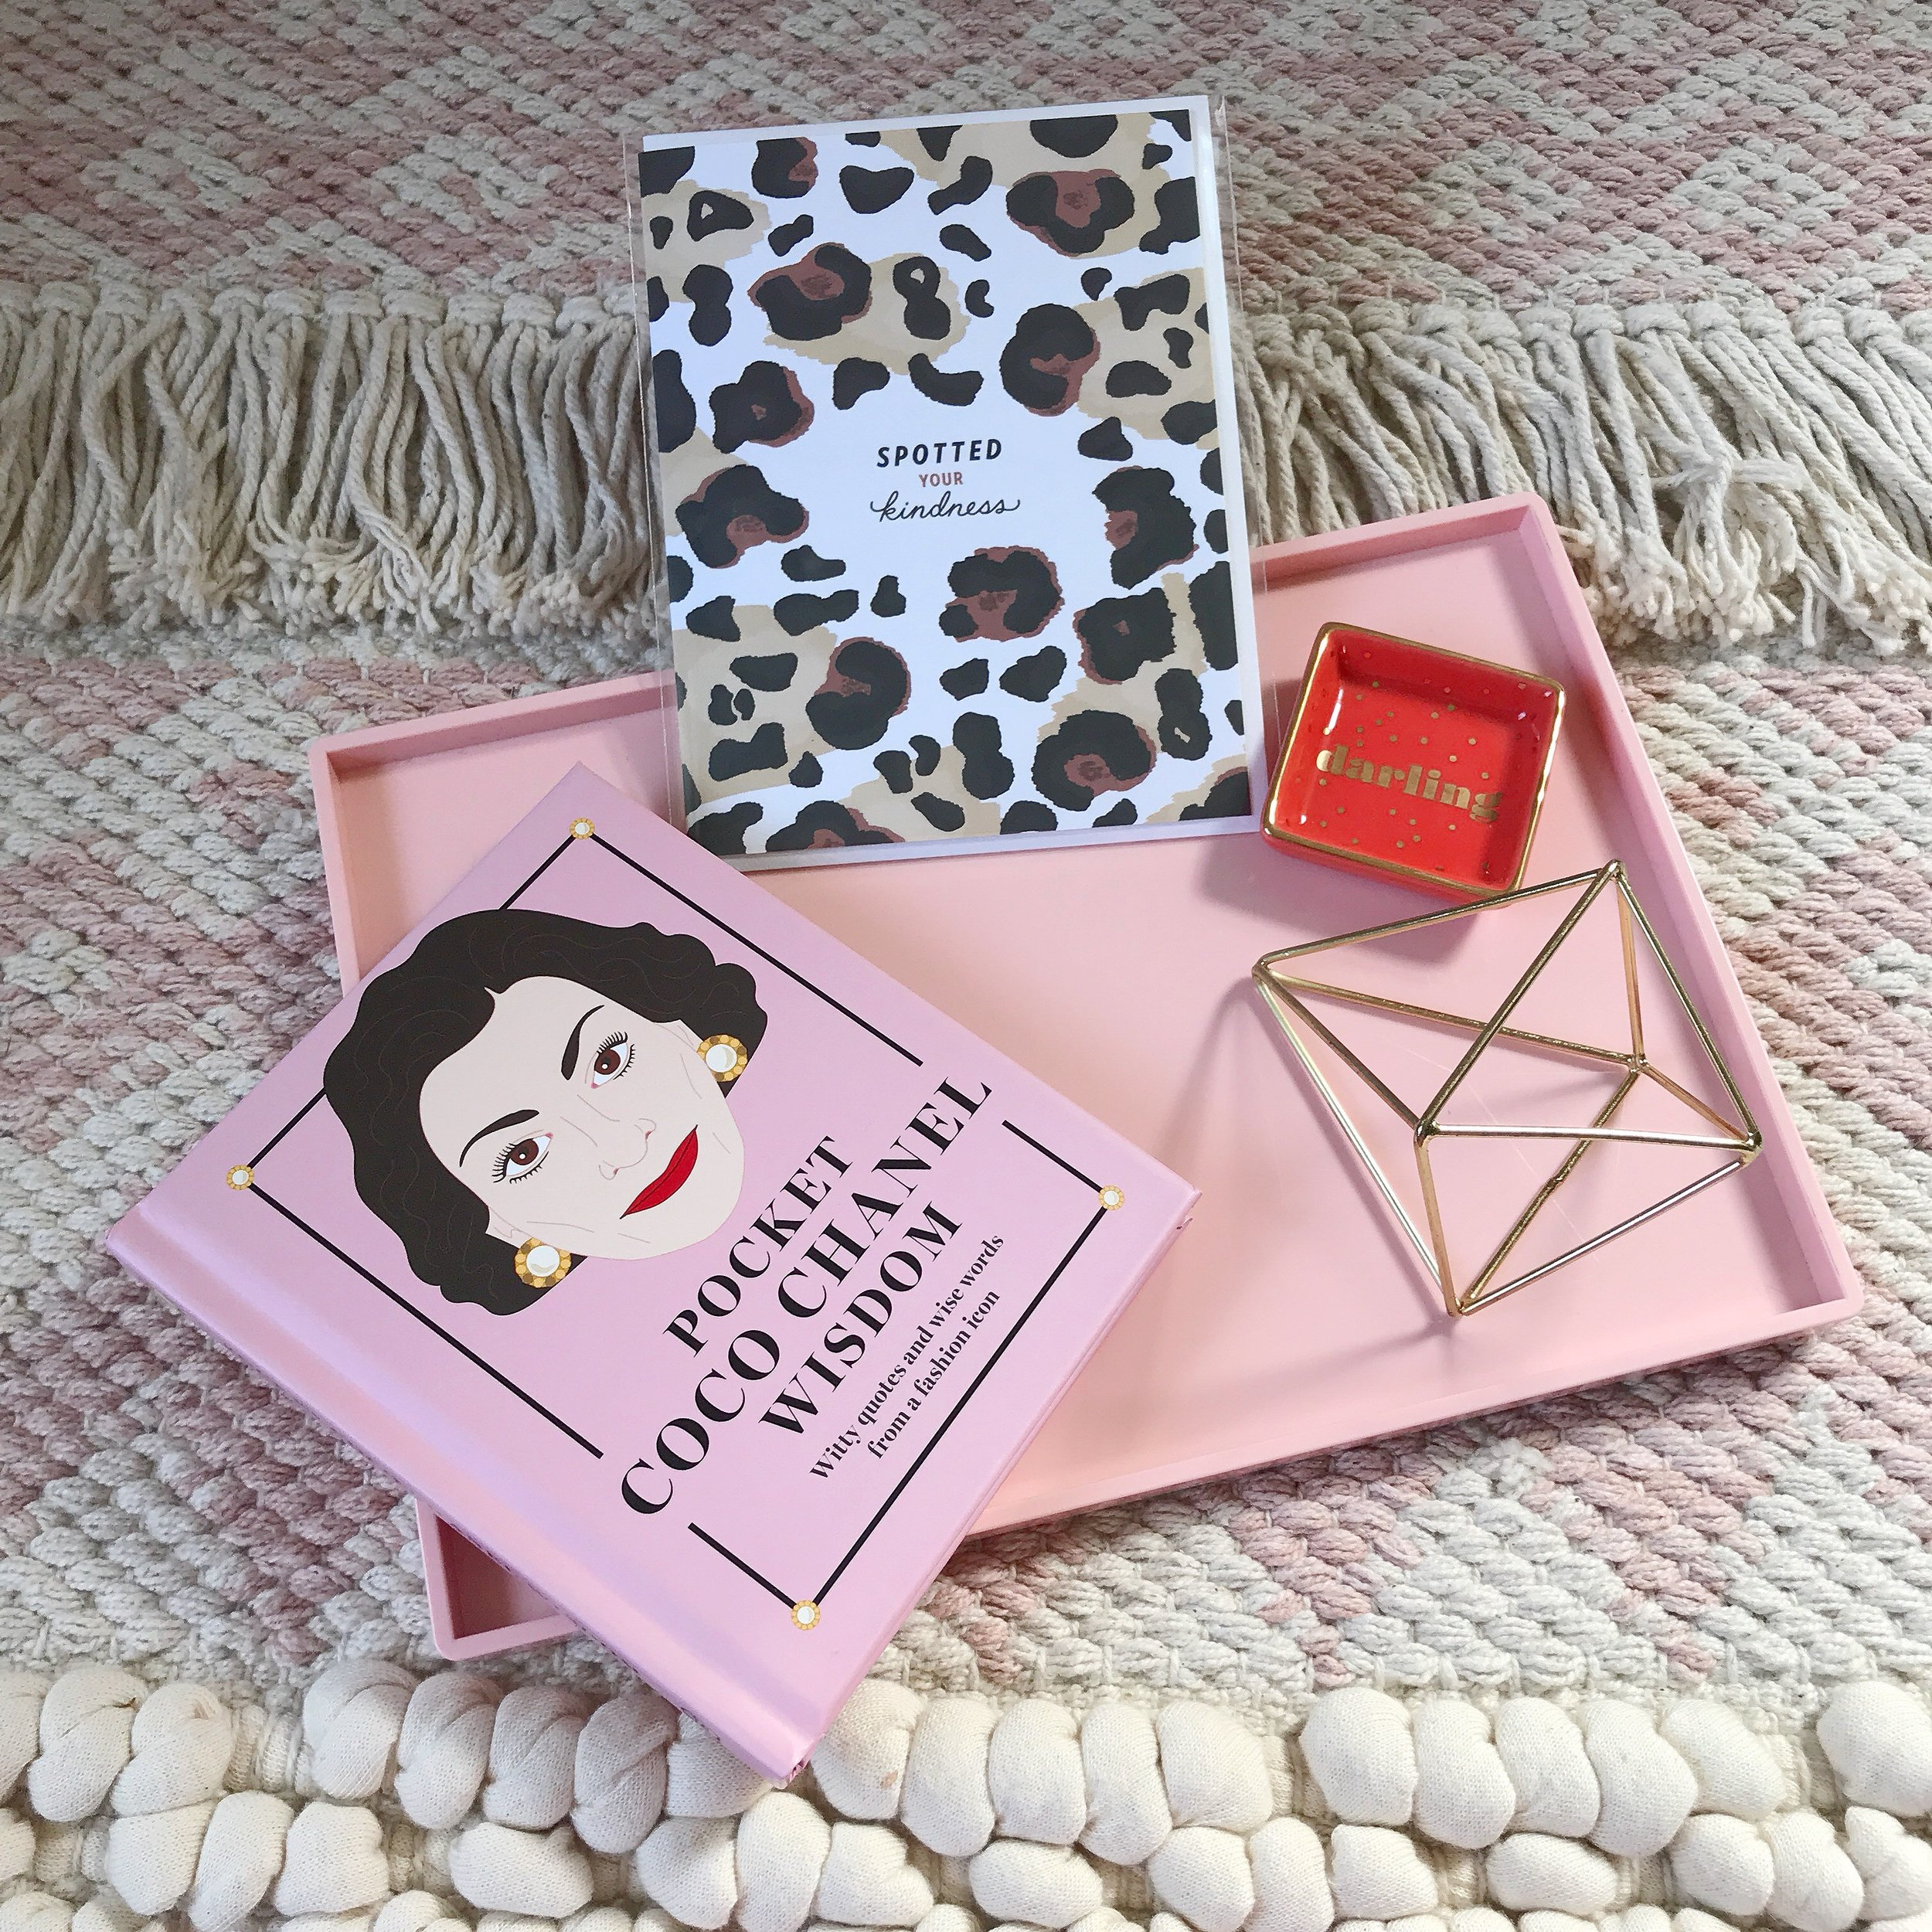 Goodies from Hazel + Dot and Sagebrushed